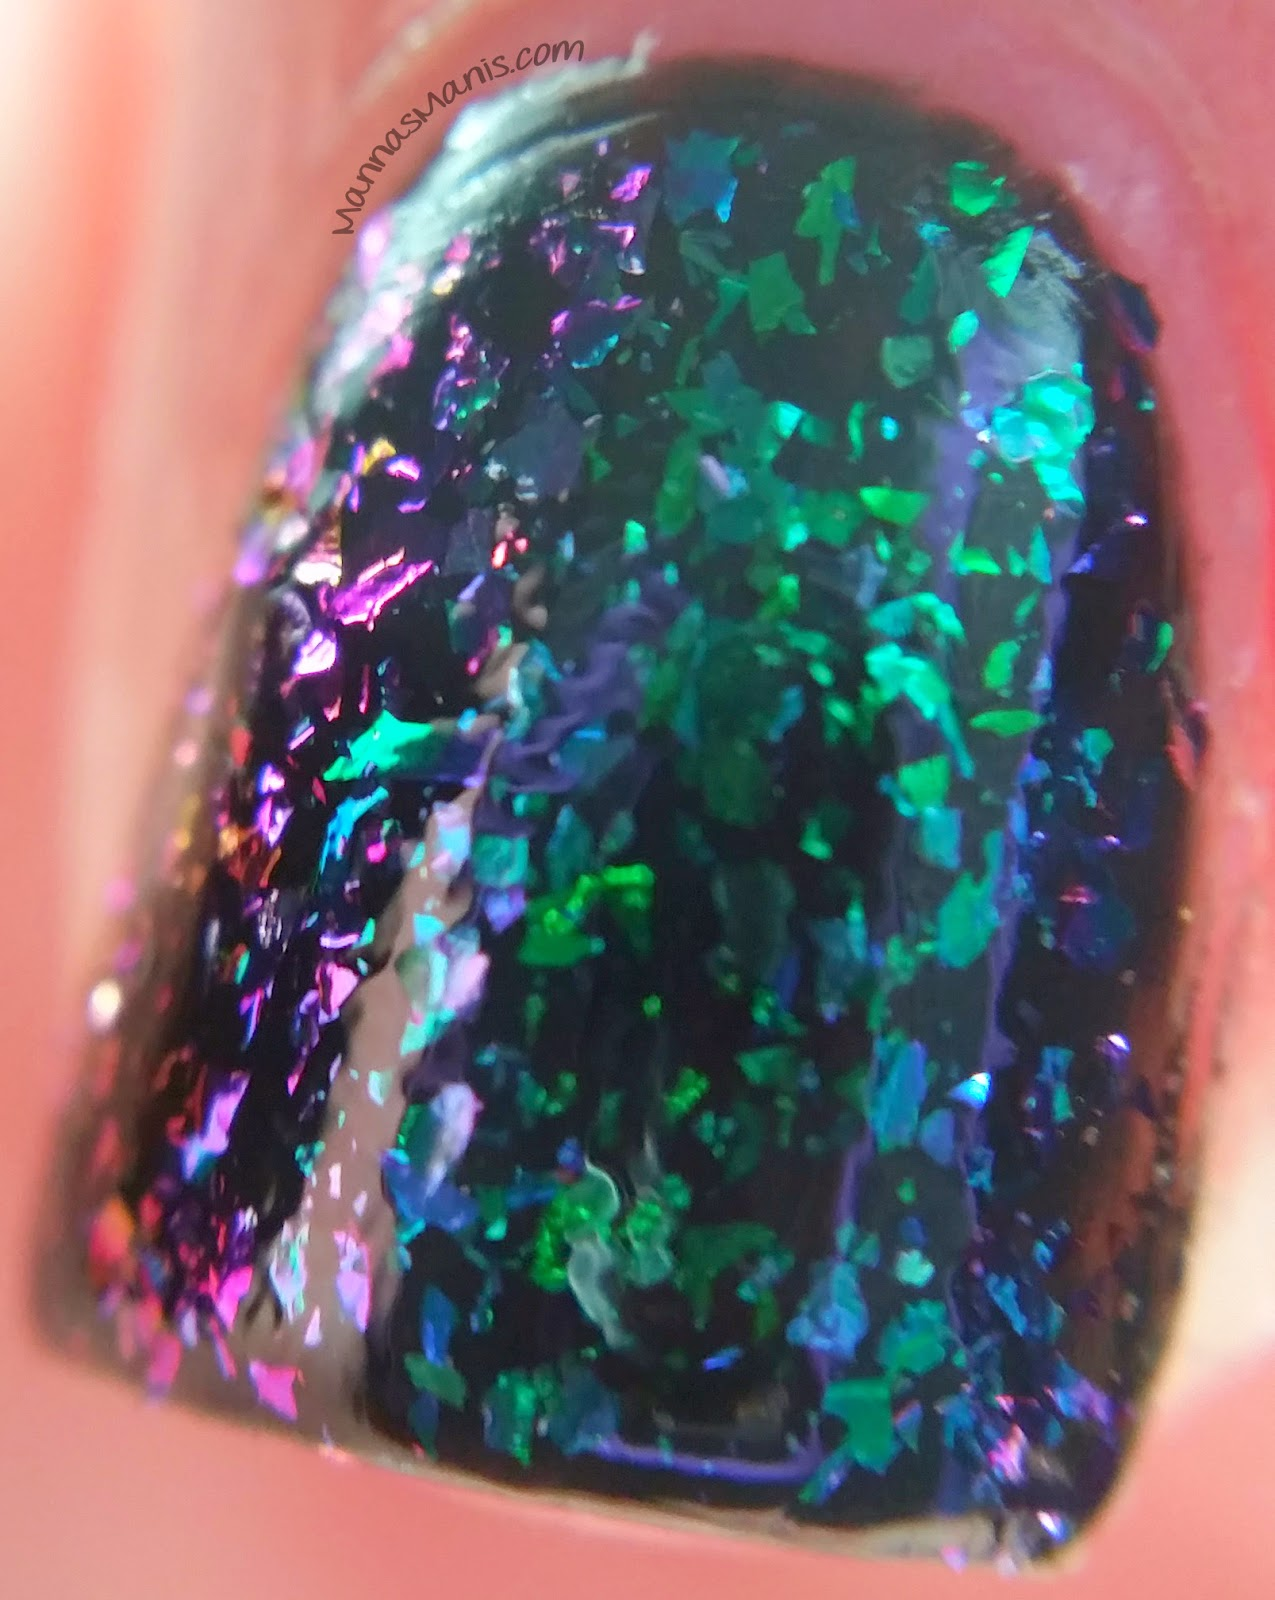 ILNP supernova, a multicolored flakie nail polish